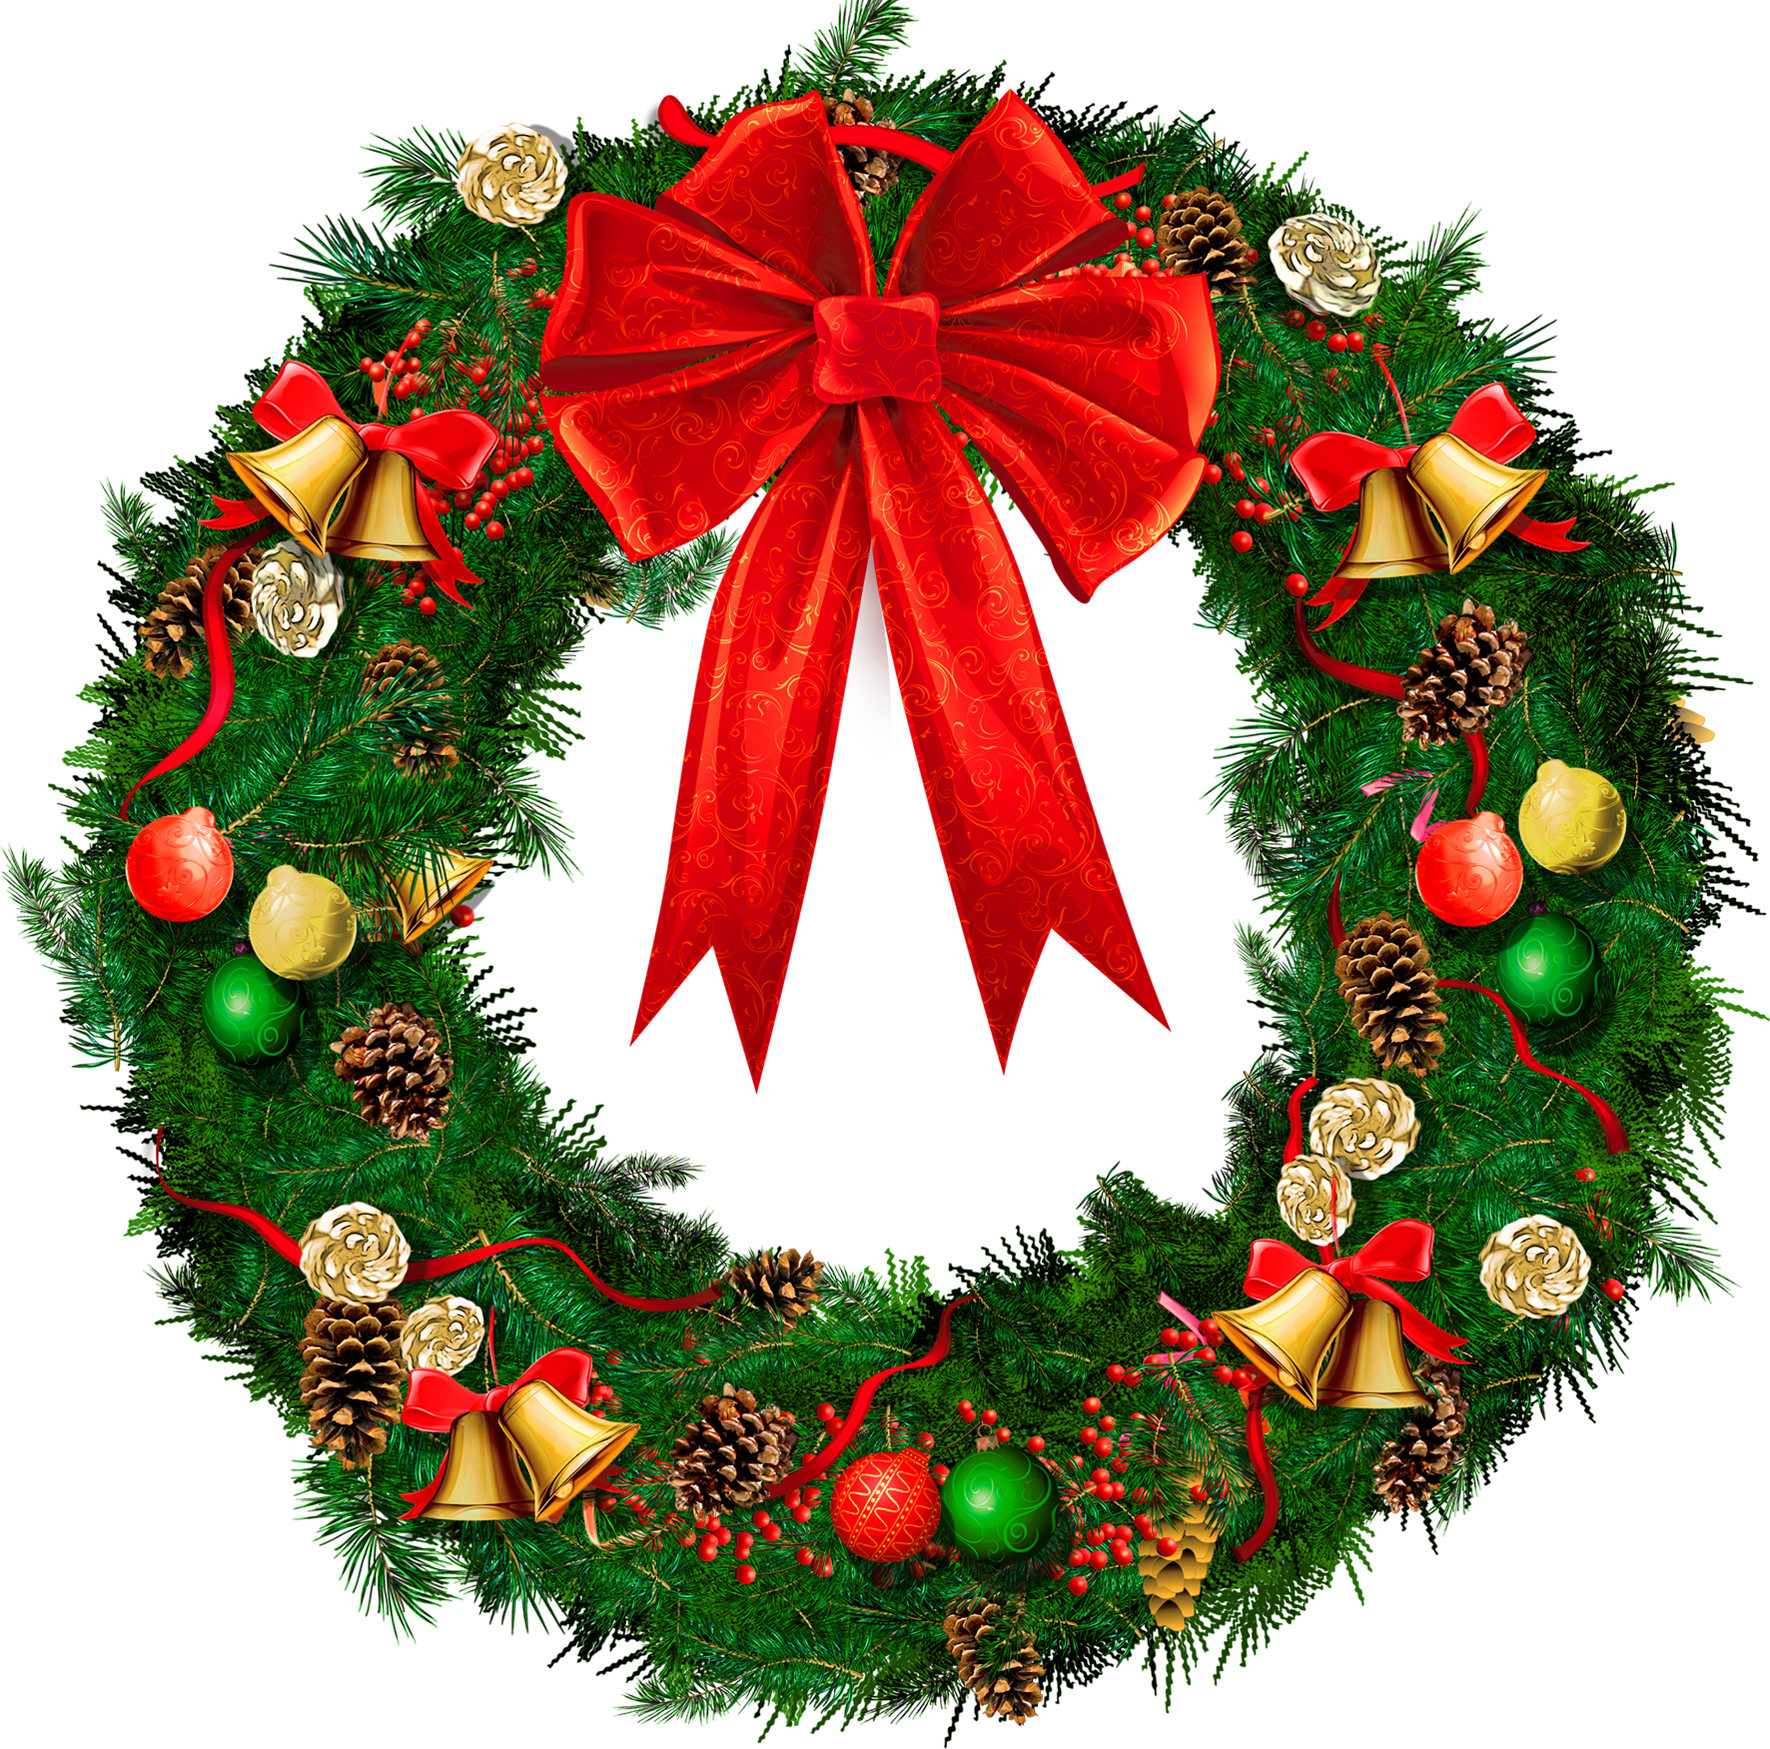 Christmas Wreath Images Free.Christmas Wreath Png Image 39759 Free Icons And Png